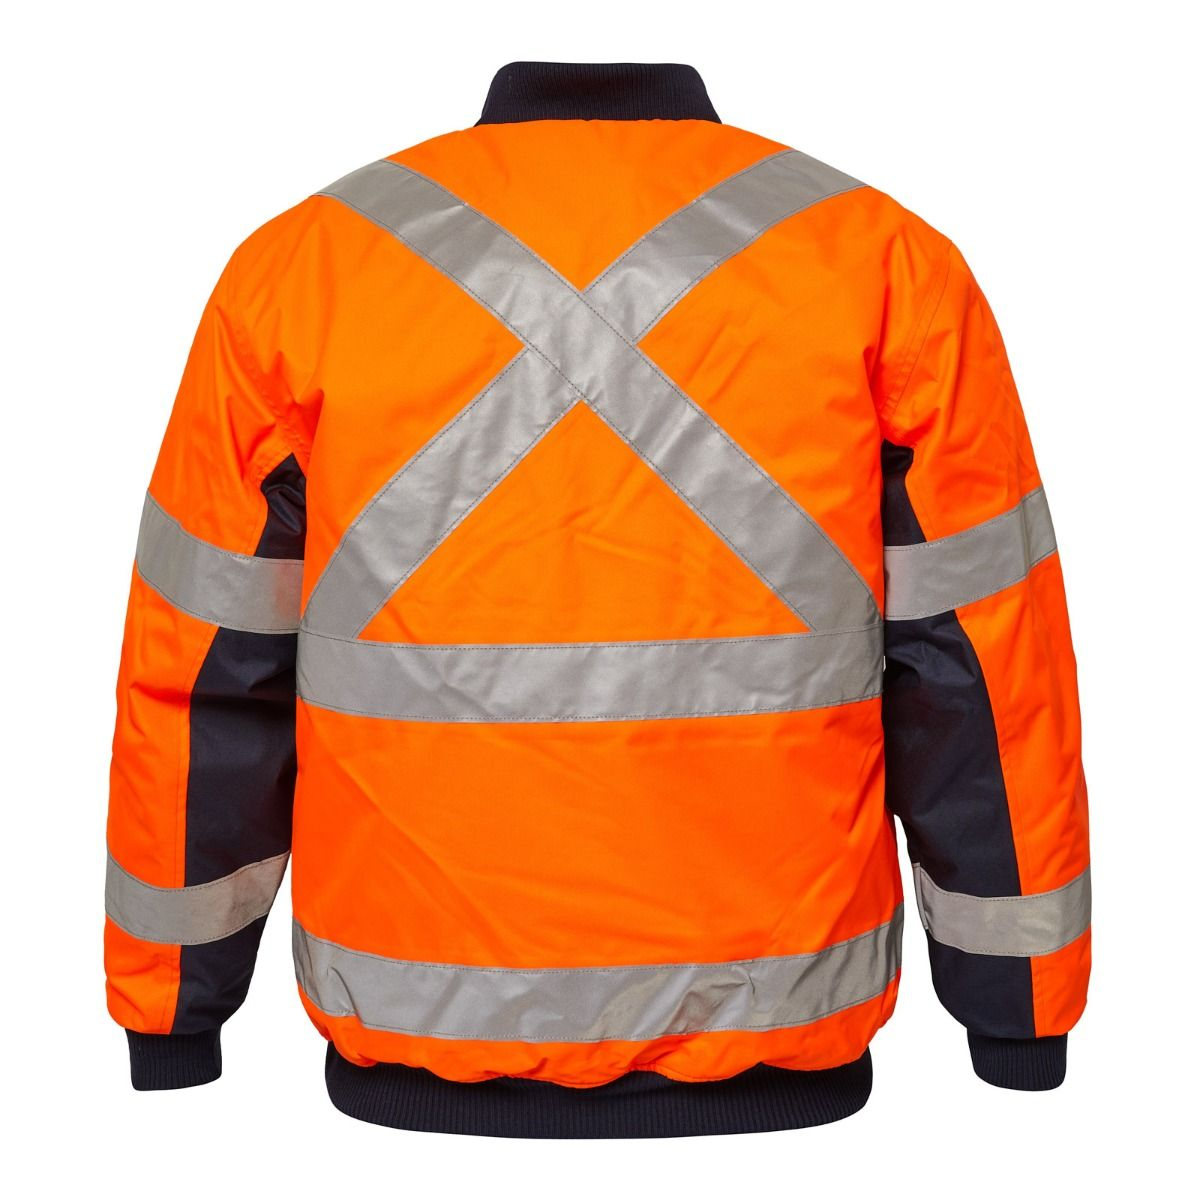 WorkCraft Tempest Hi Vis X-Taped Bomber Jacket